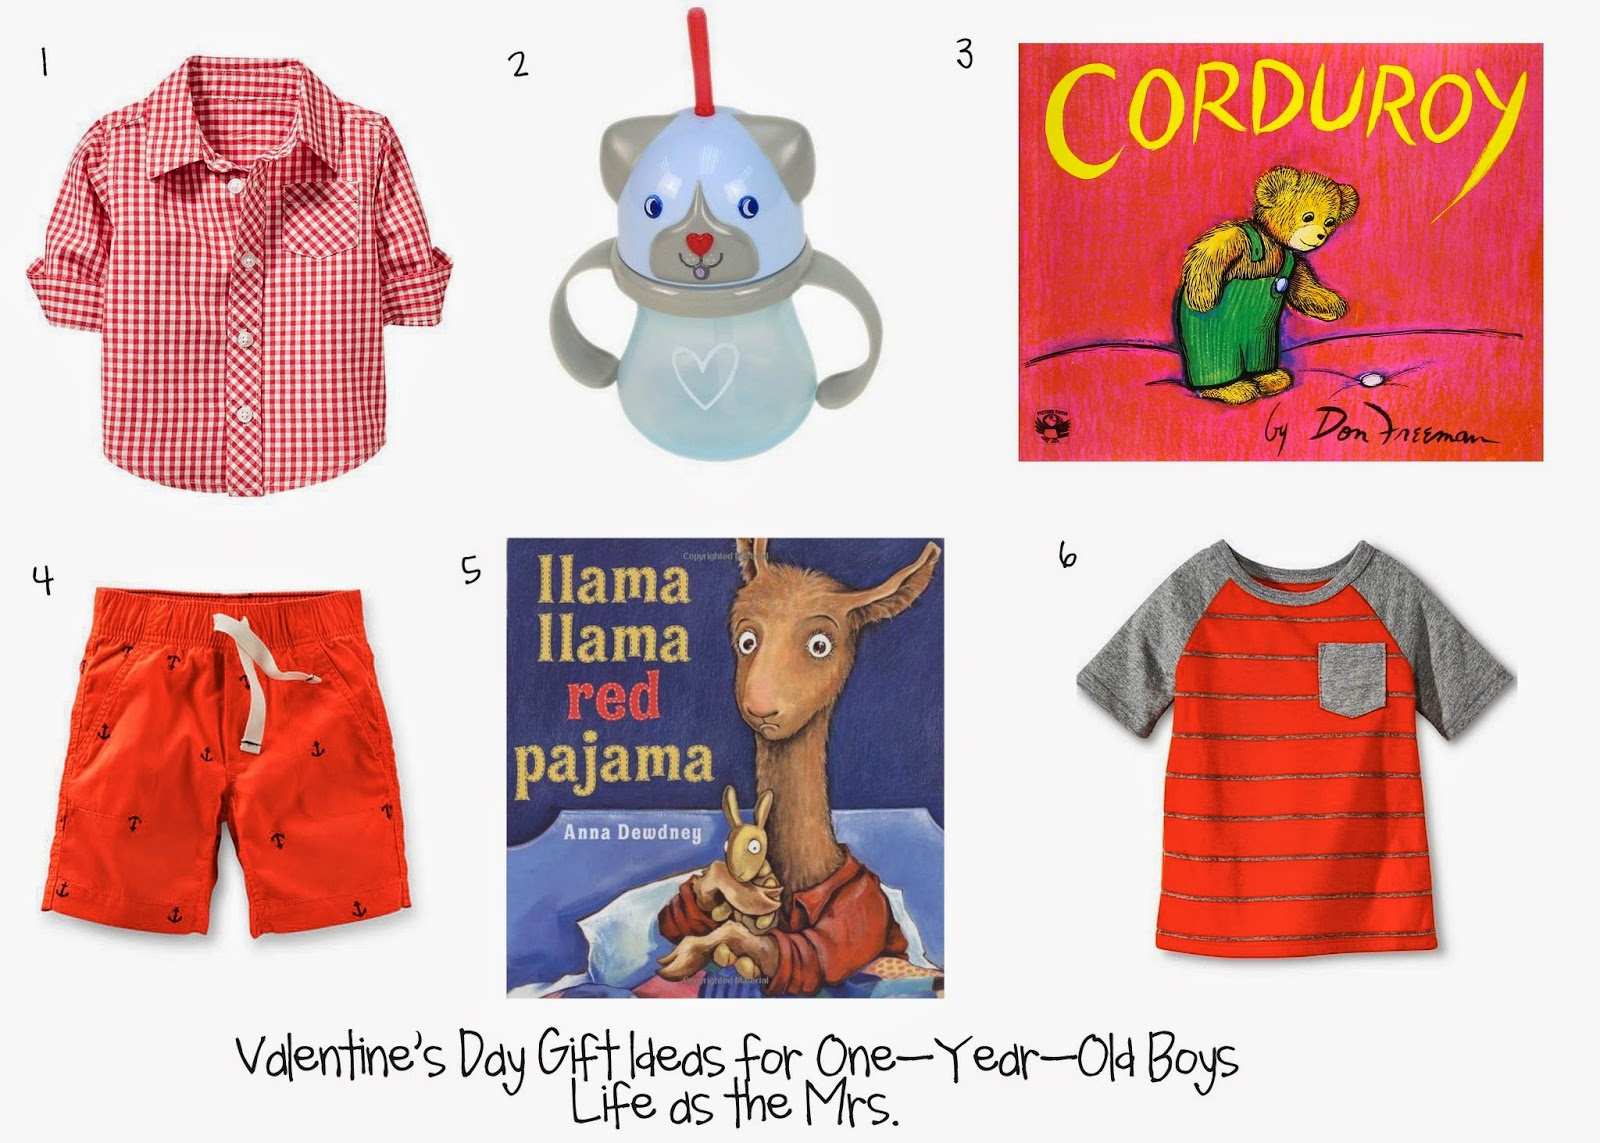 Life As The Mrs.: Valentine's Day Gift Ideas For 1-Year